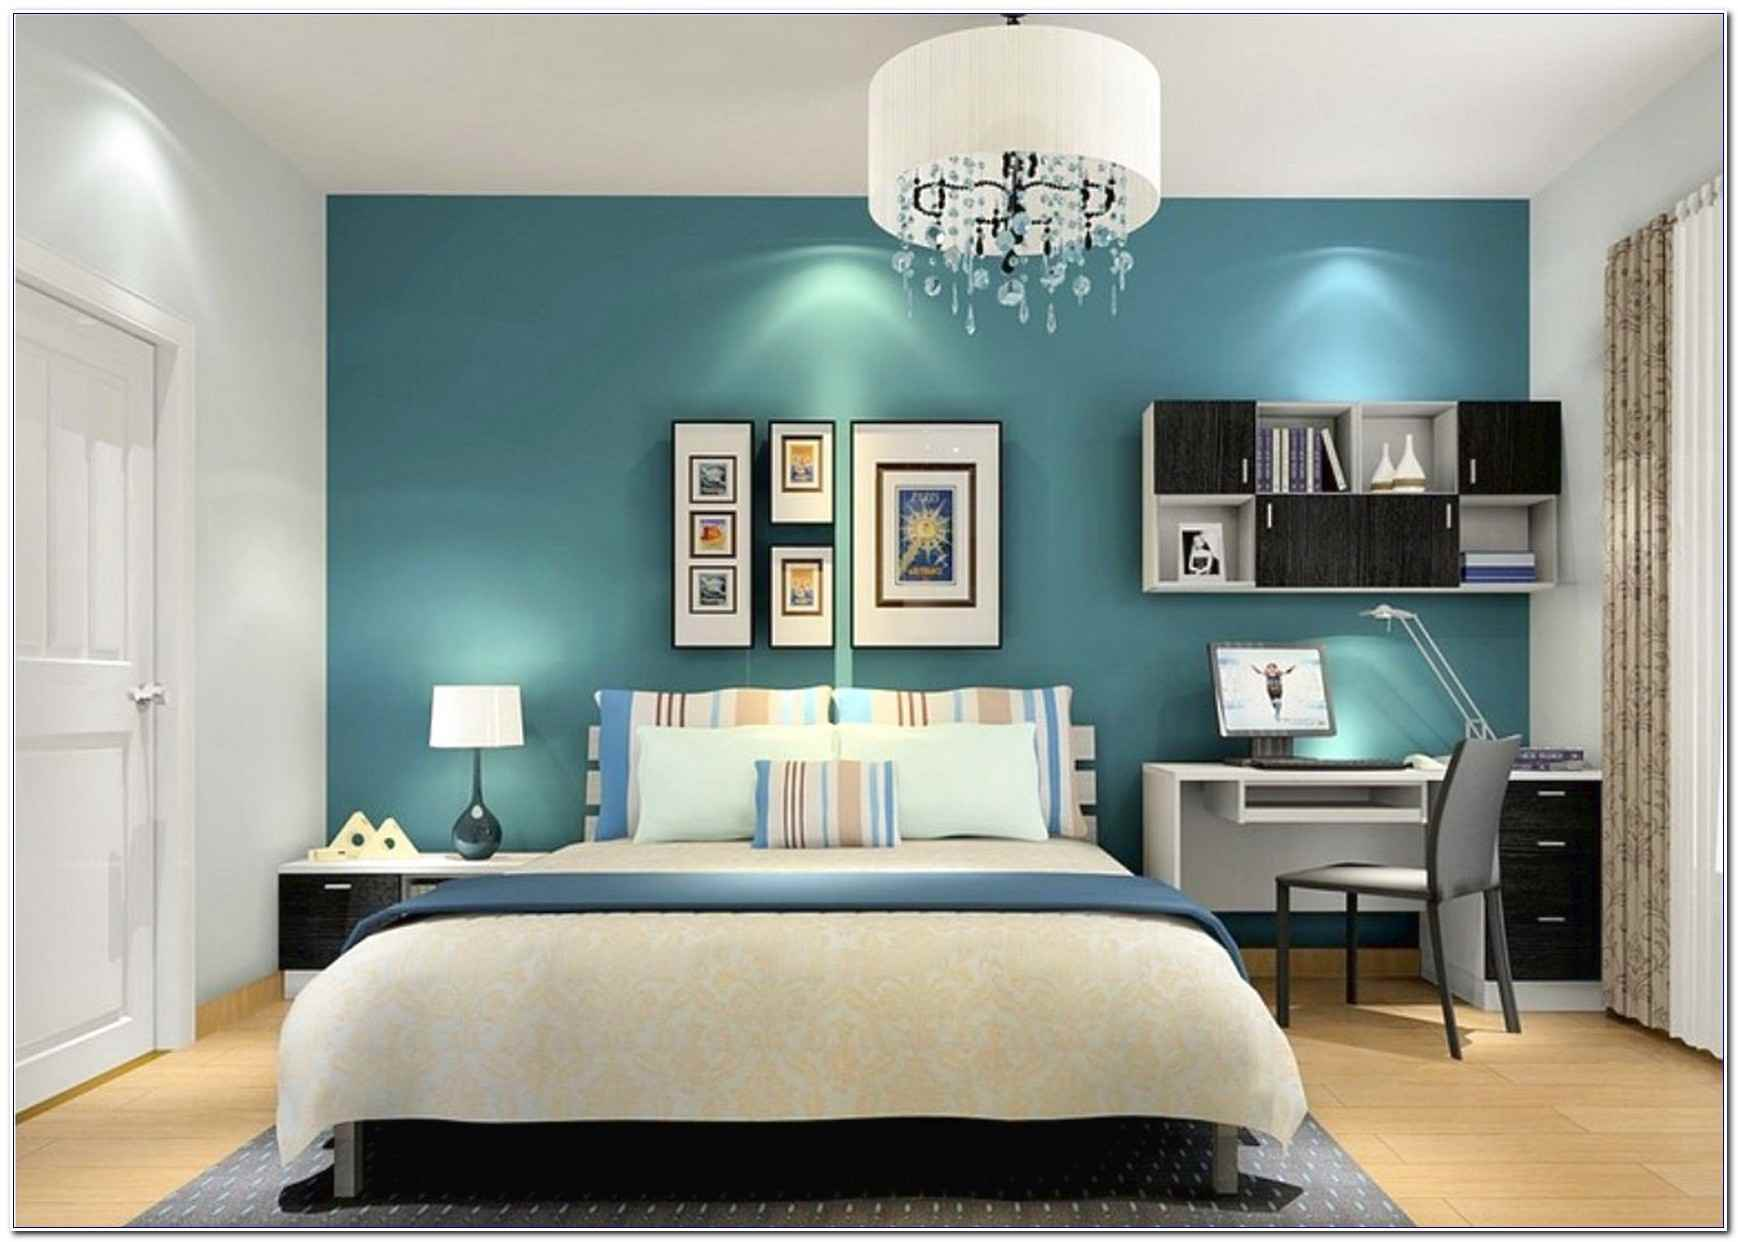 Wonderful bedroom for young adults